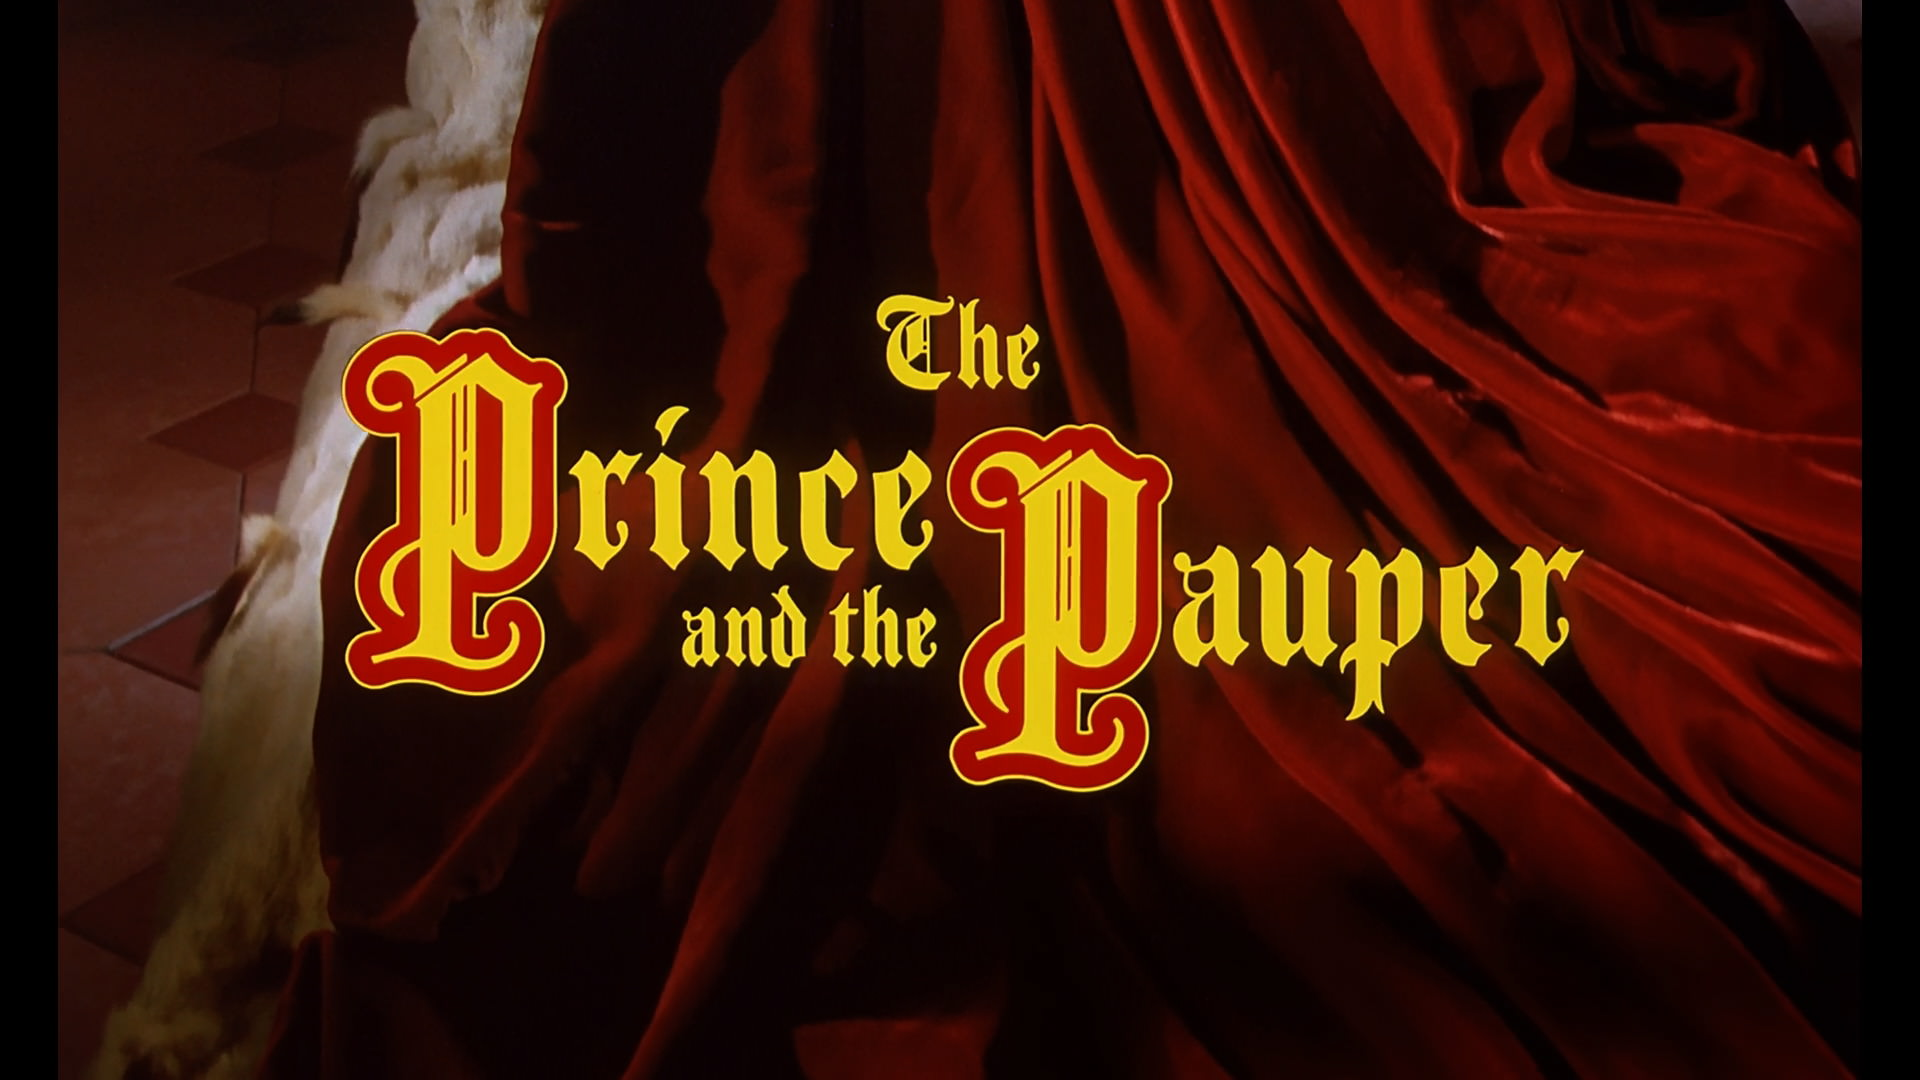 The Prince and the Pauper (1990)